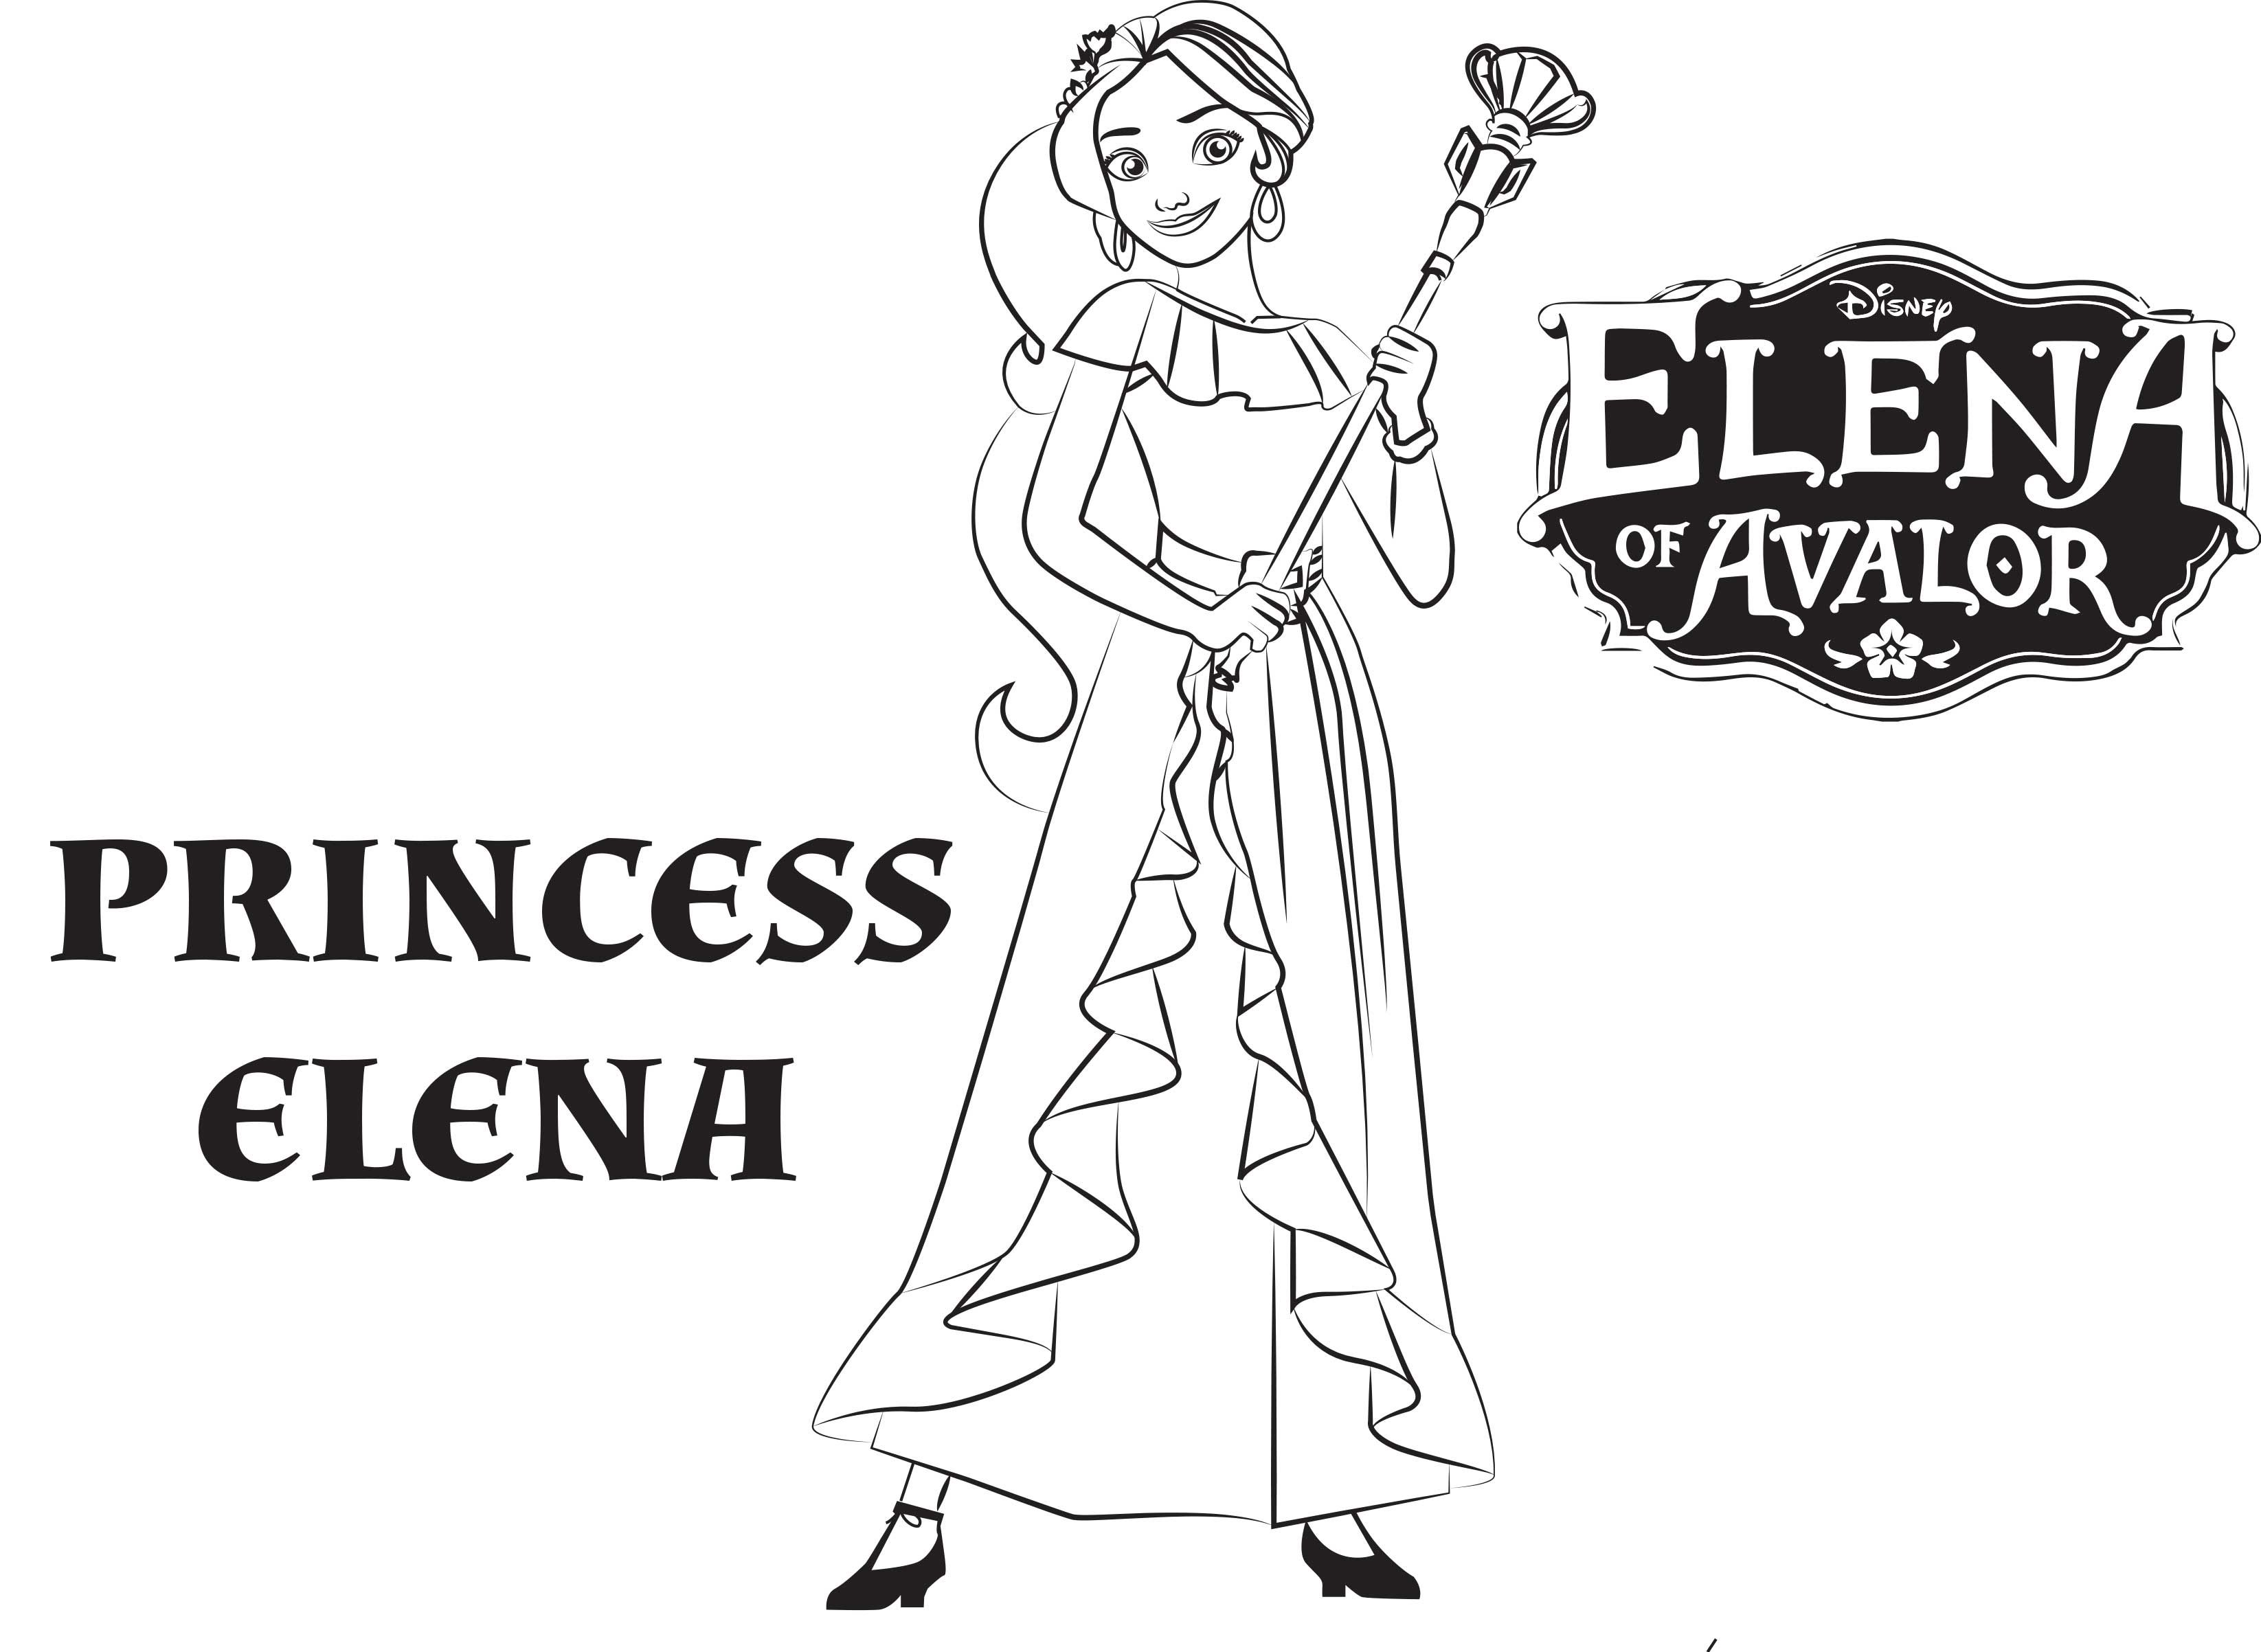 Disney 39 s Elena of Avalor Coloring